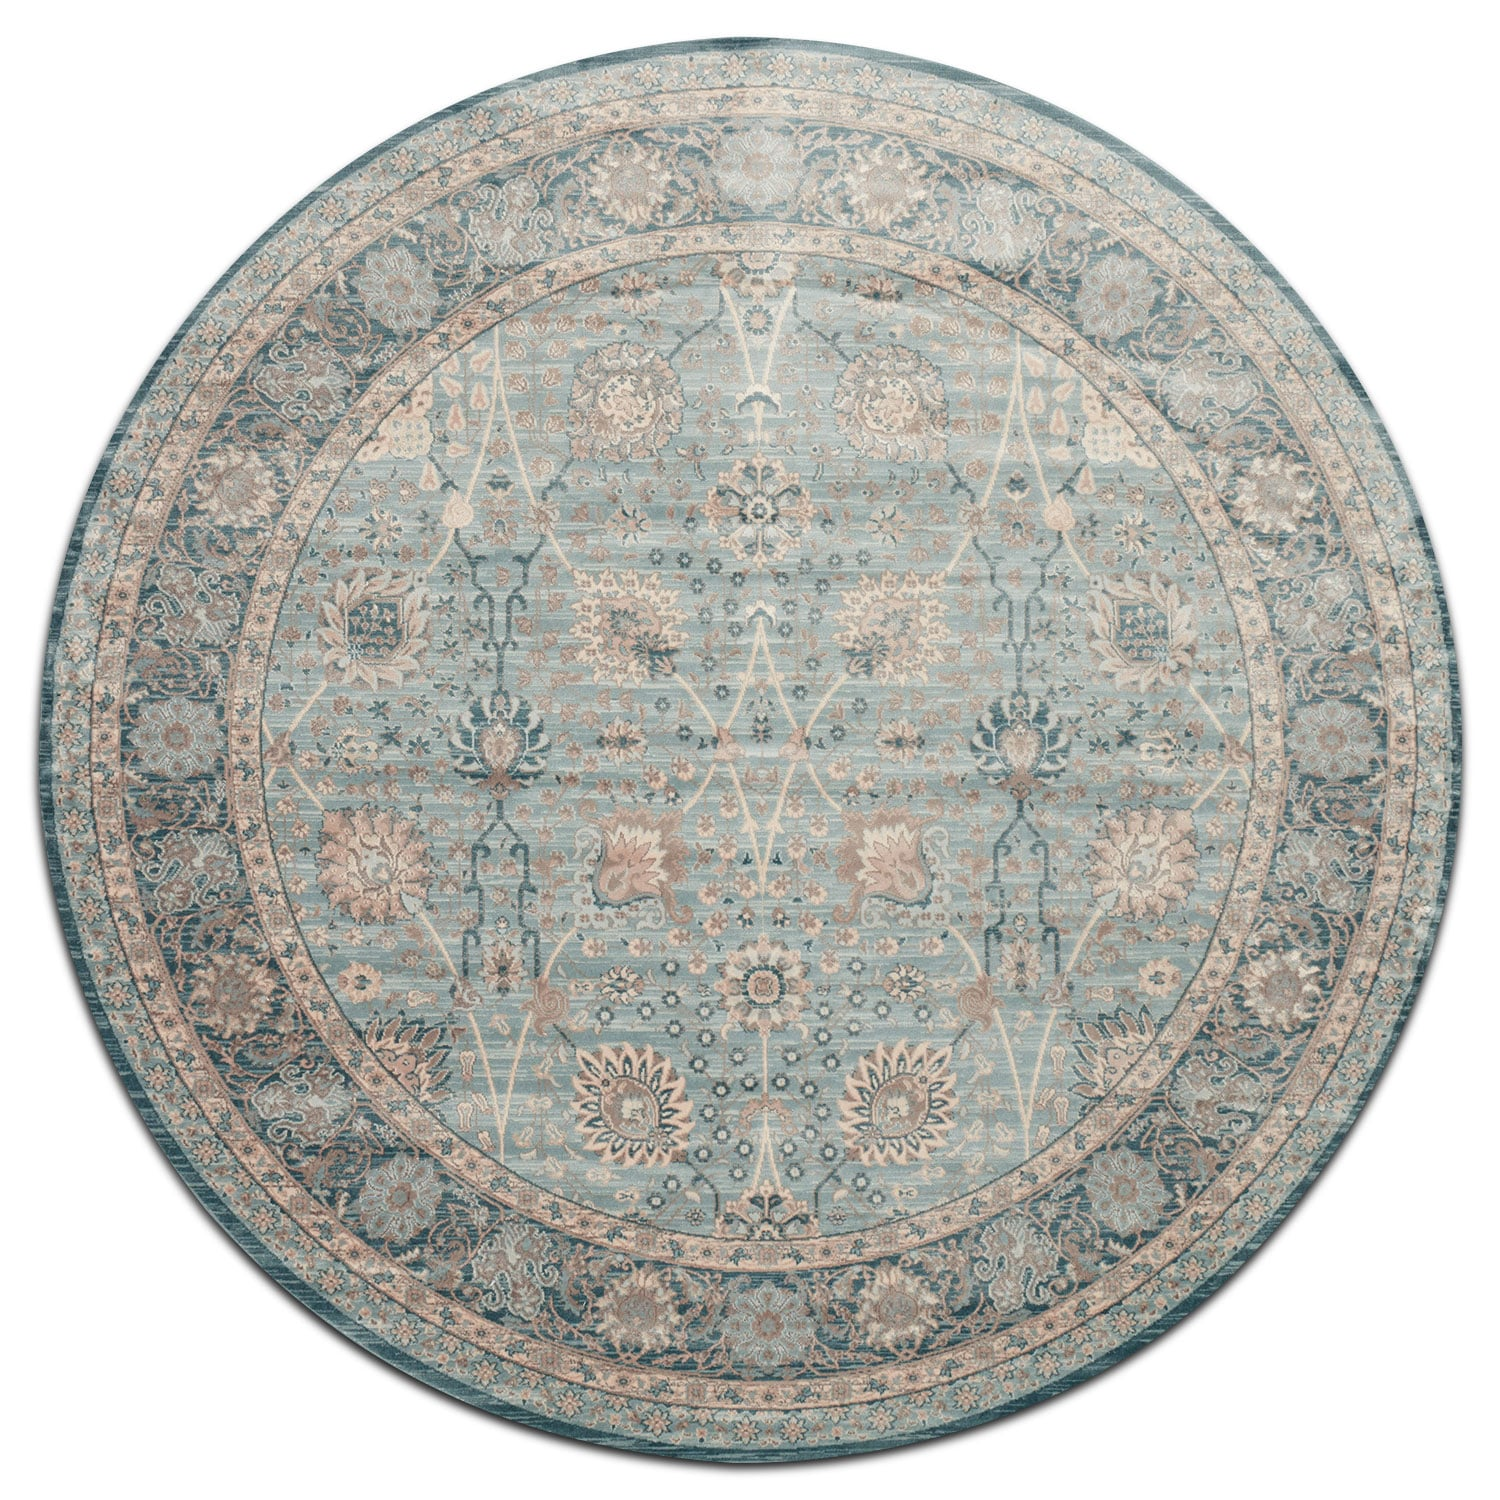 Ella Rose 7' Round Rug - Light and Dark Blue